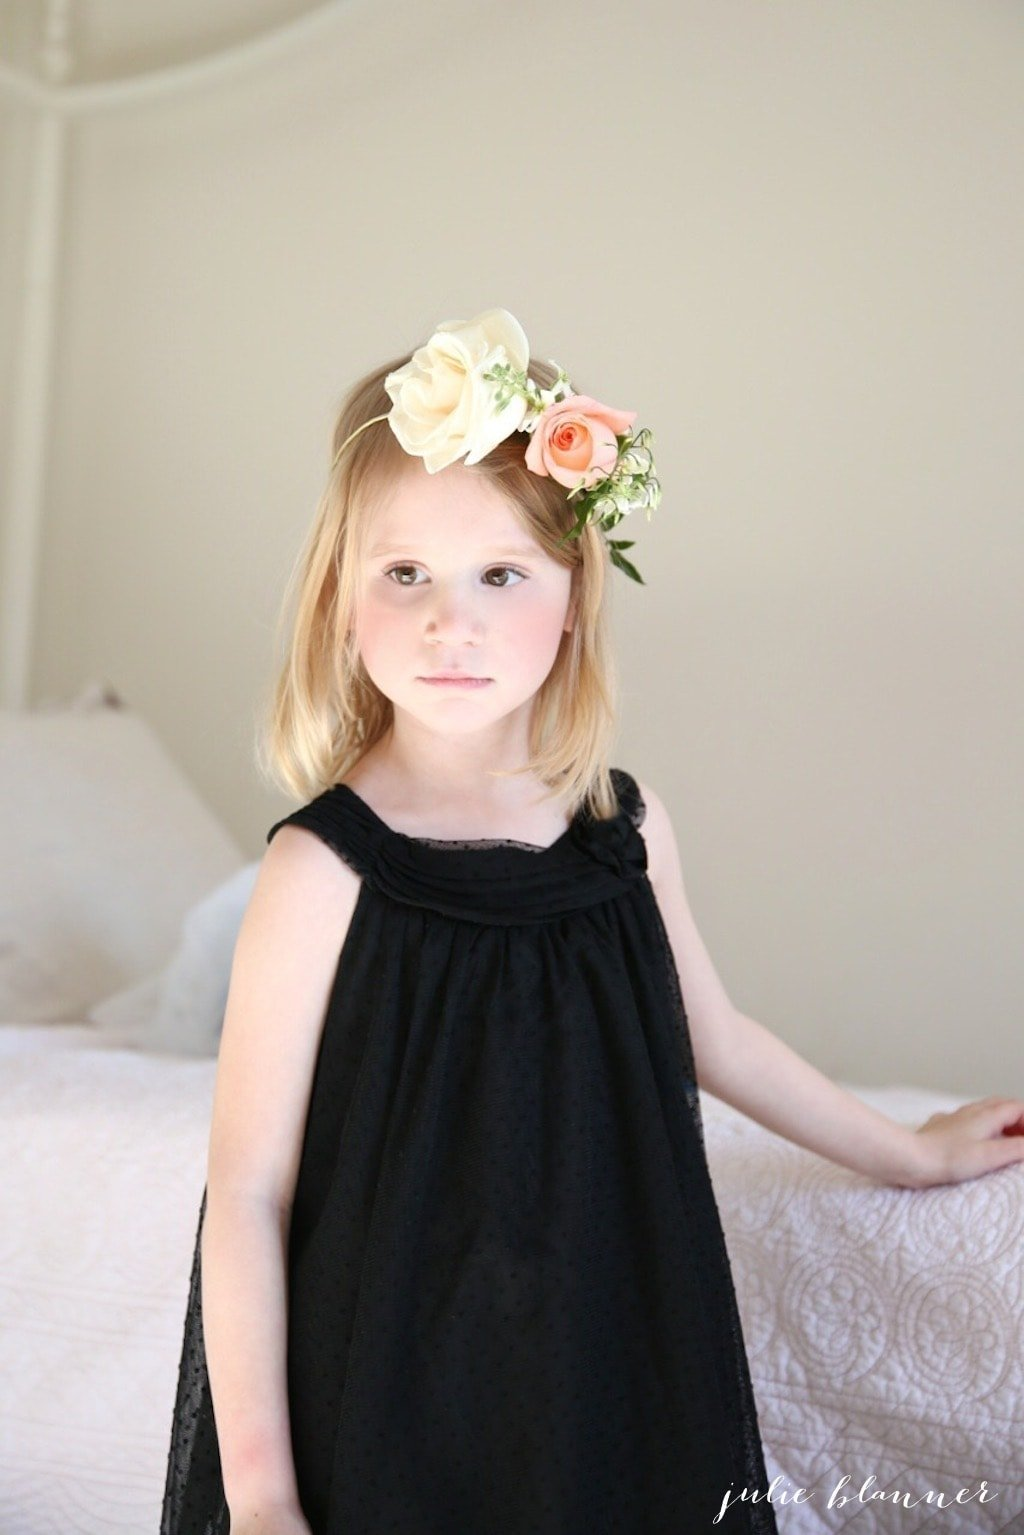 Learn how to make flower crowns with this easy DIY tutorial!